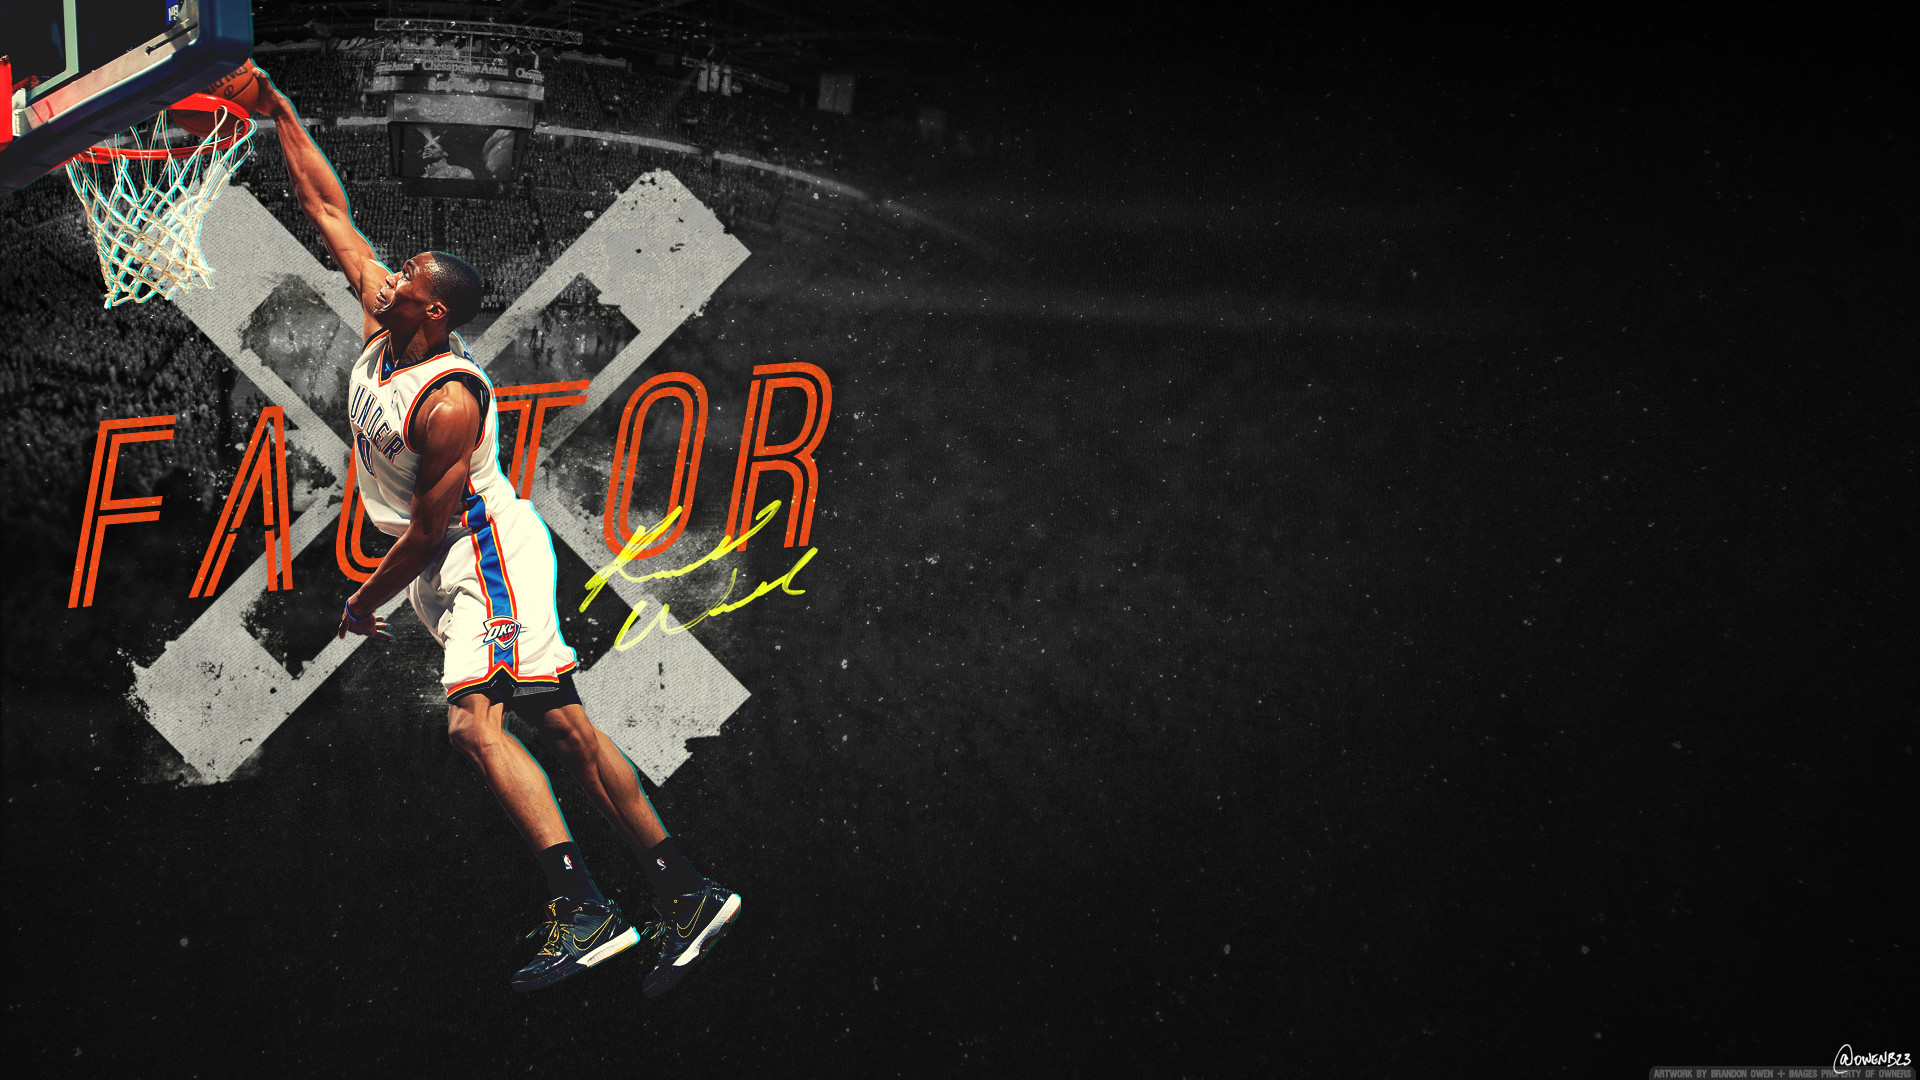 1920x1080 Go Back > Images For > Russell Westbrook Dunk Wallpaper